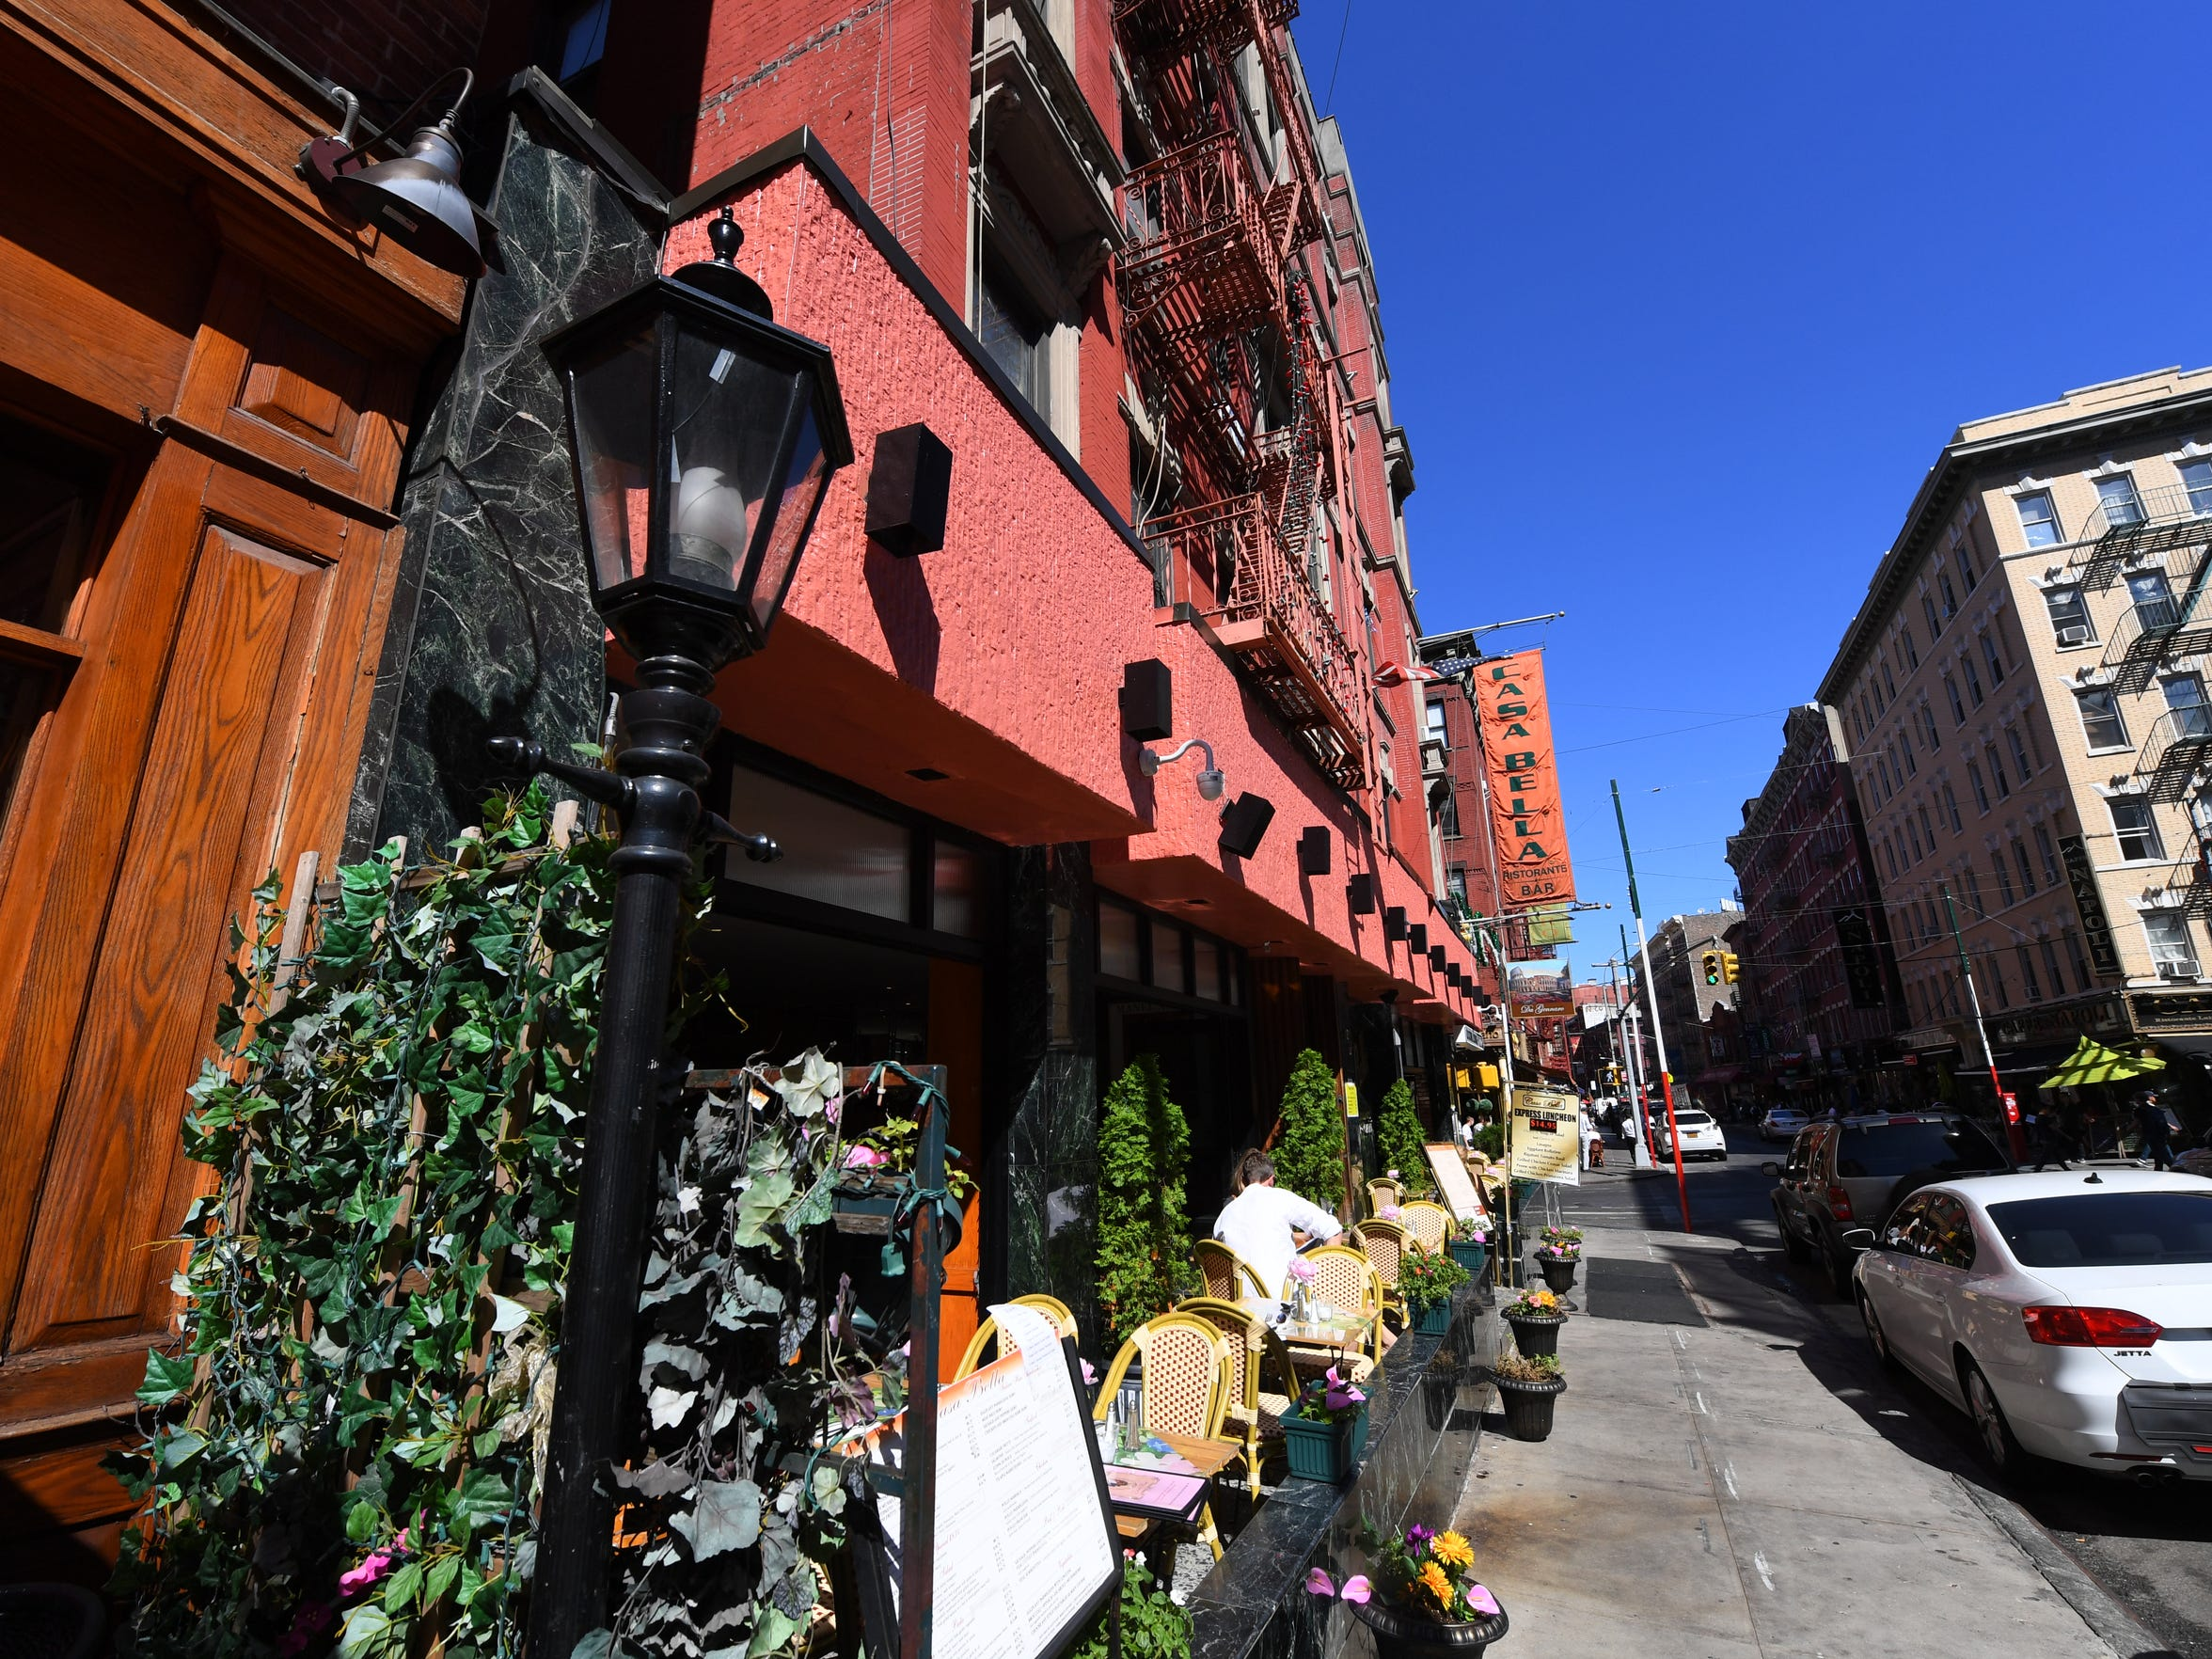 Diners enjoy a meal on Mulberry Street in New York's